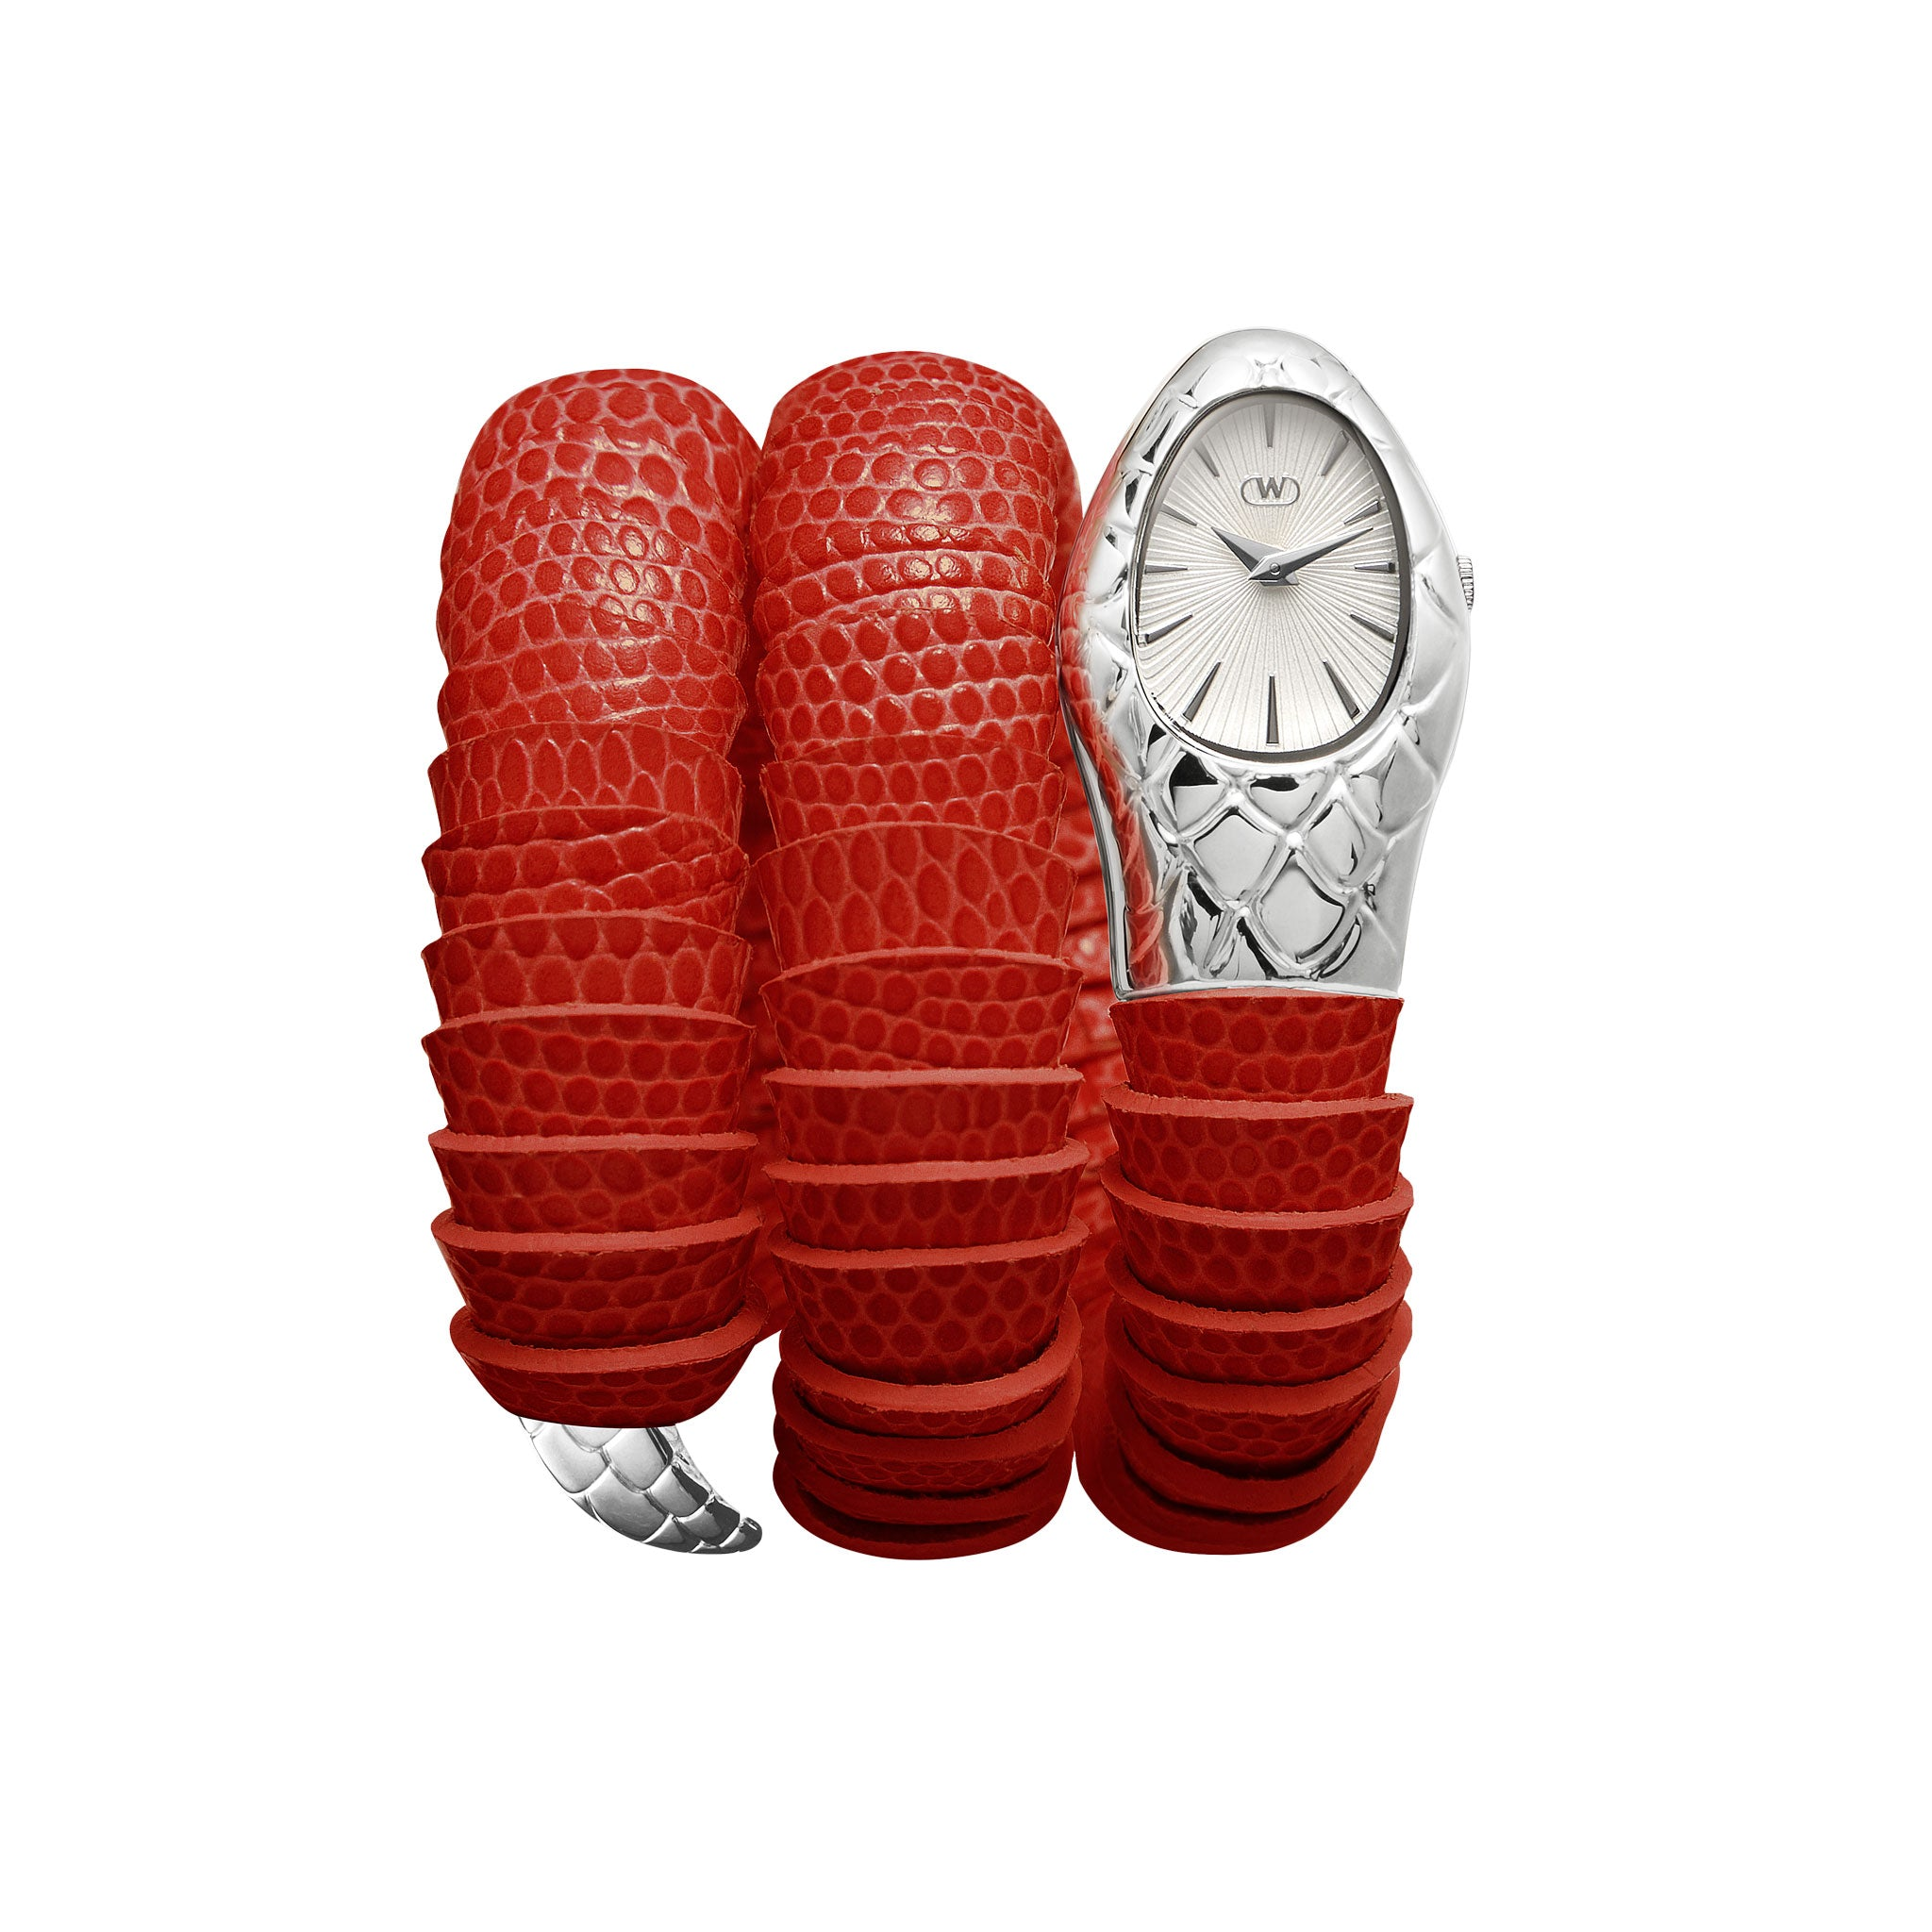 women's silver serpent watch with red lizard printed band